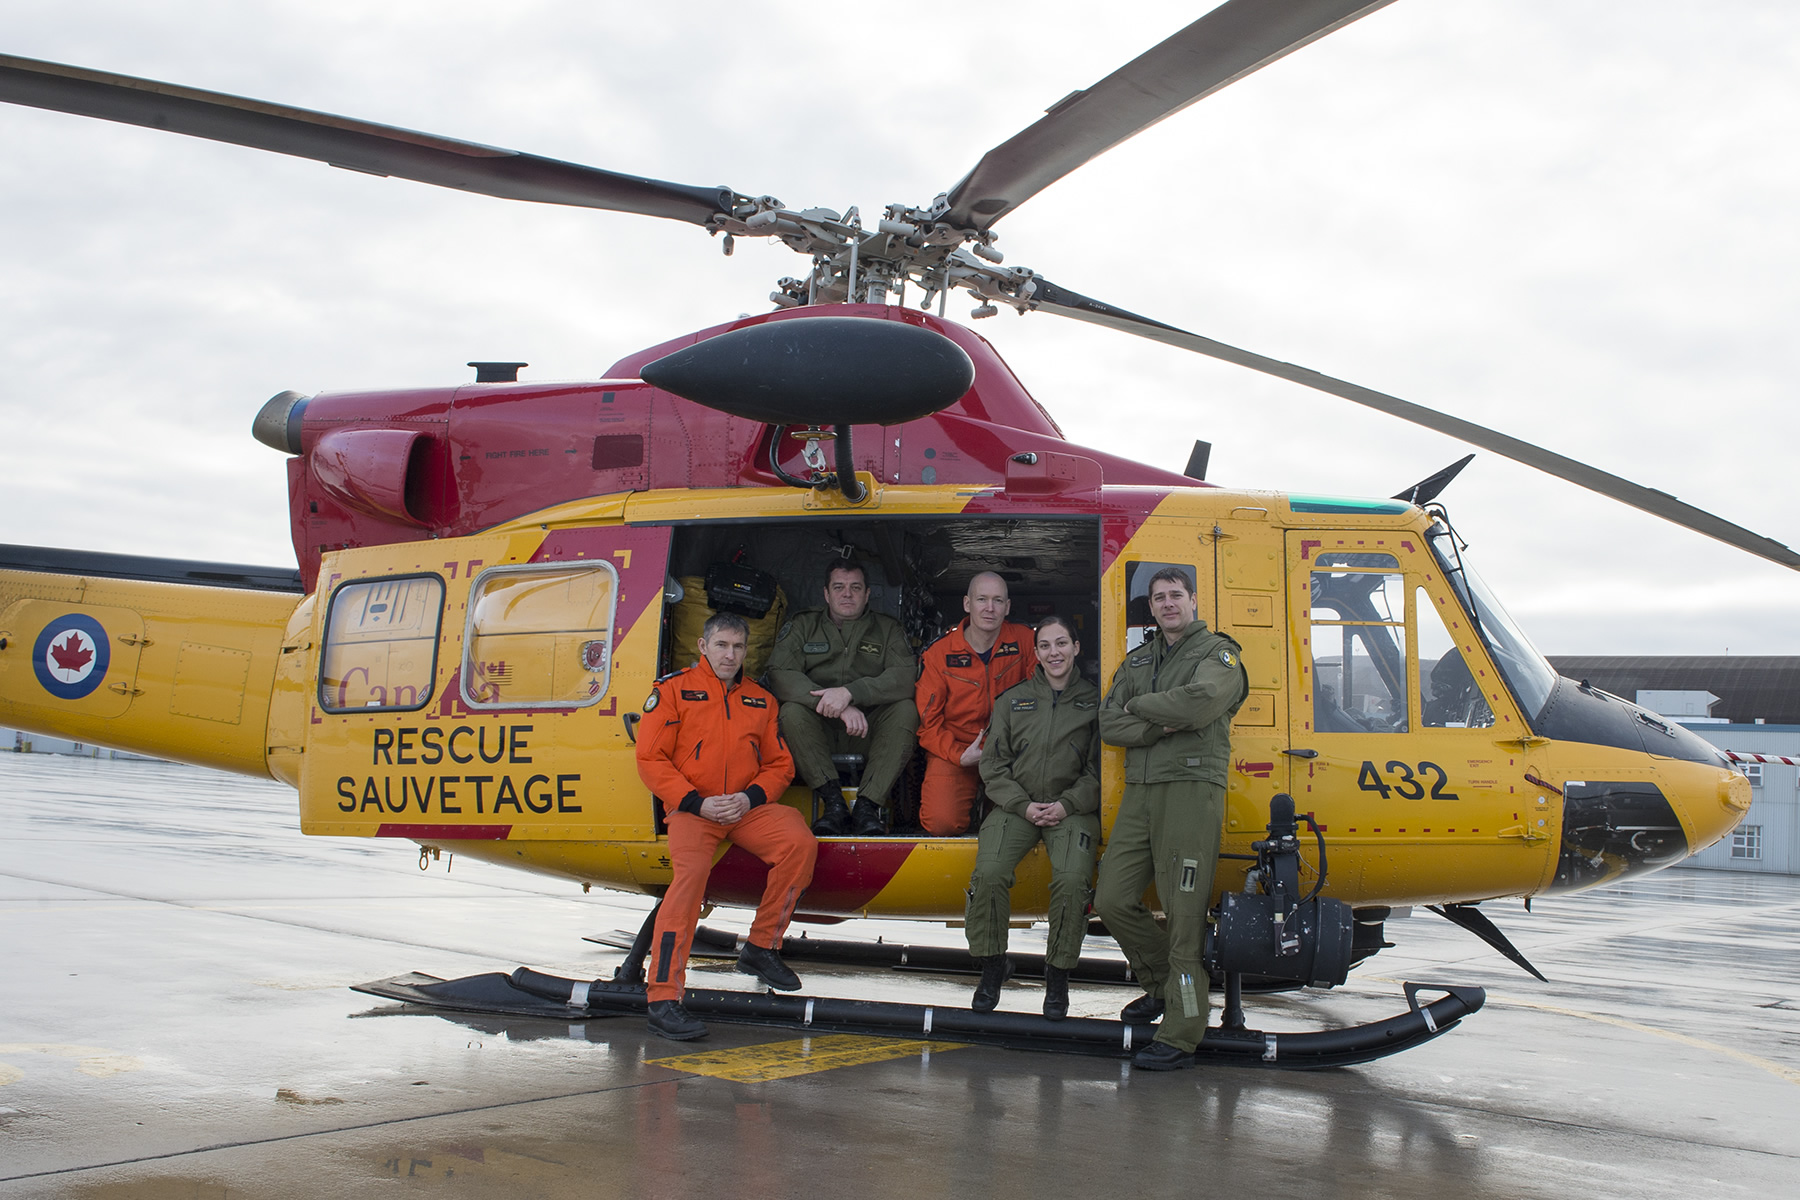 Five people stand in front of or sit in a yellow helicopter.